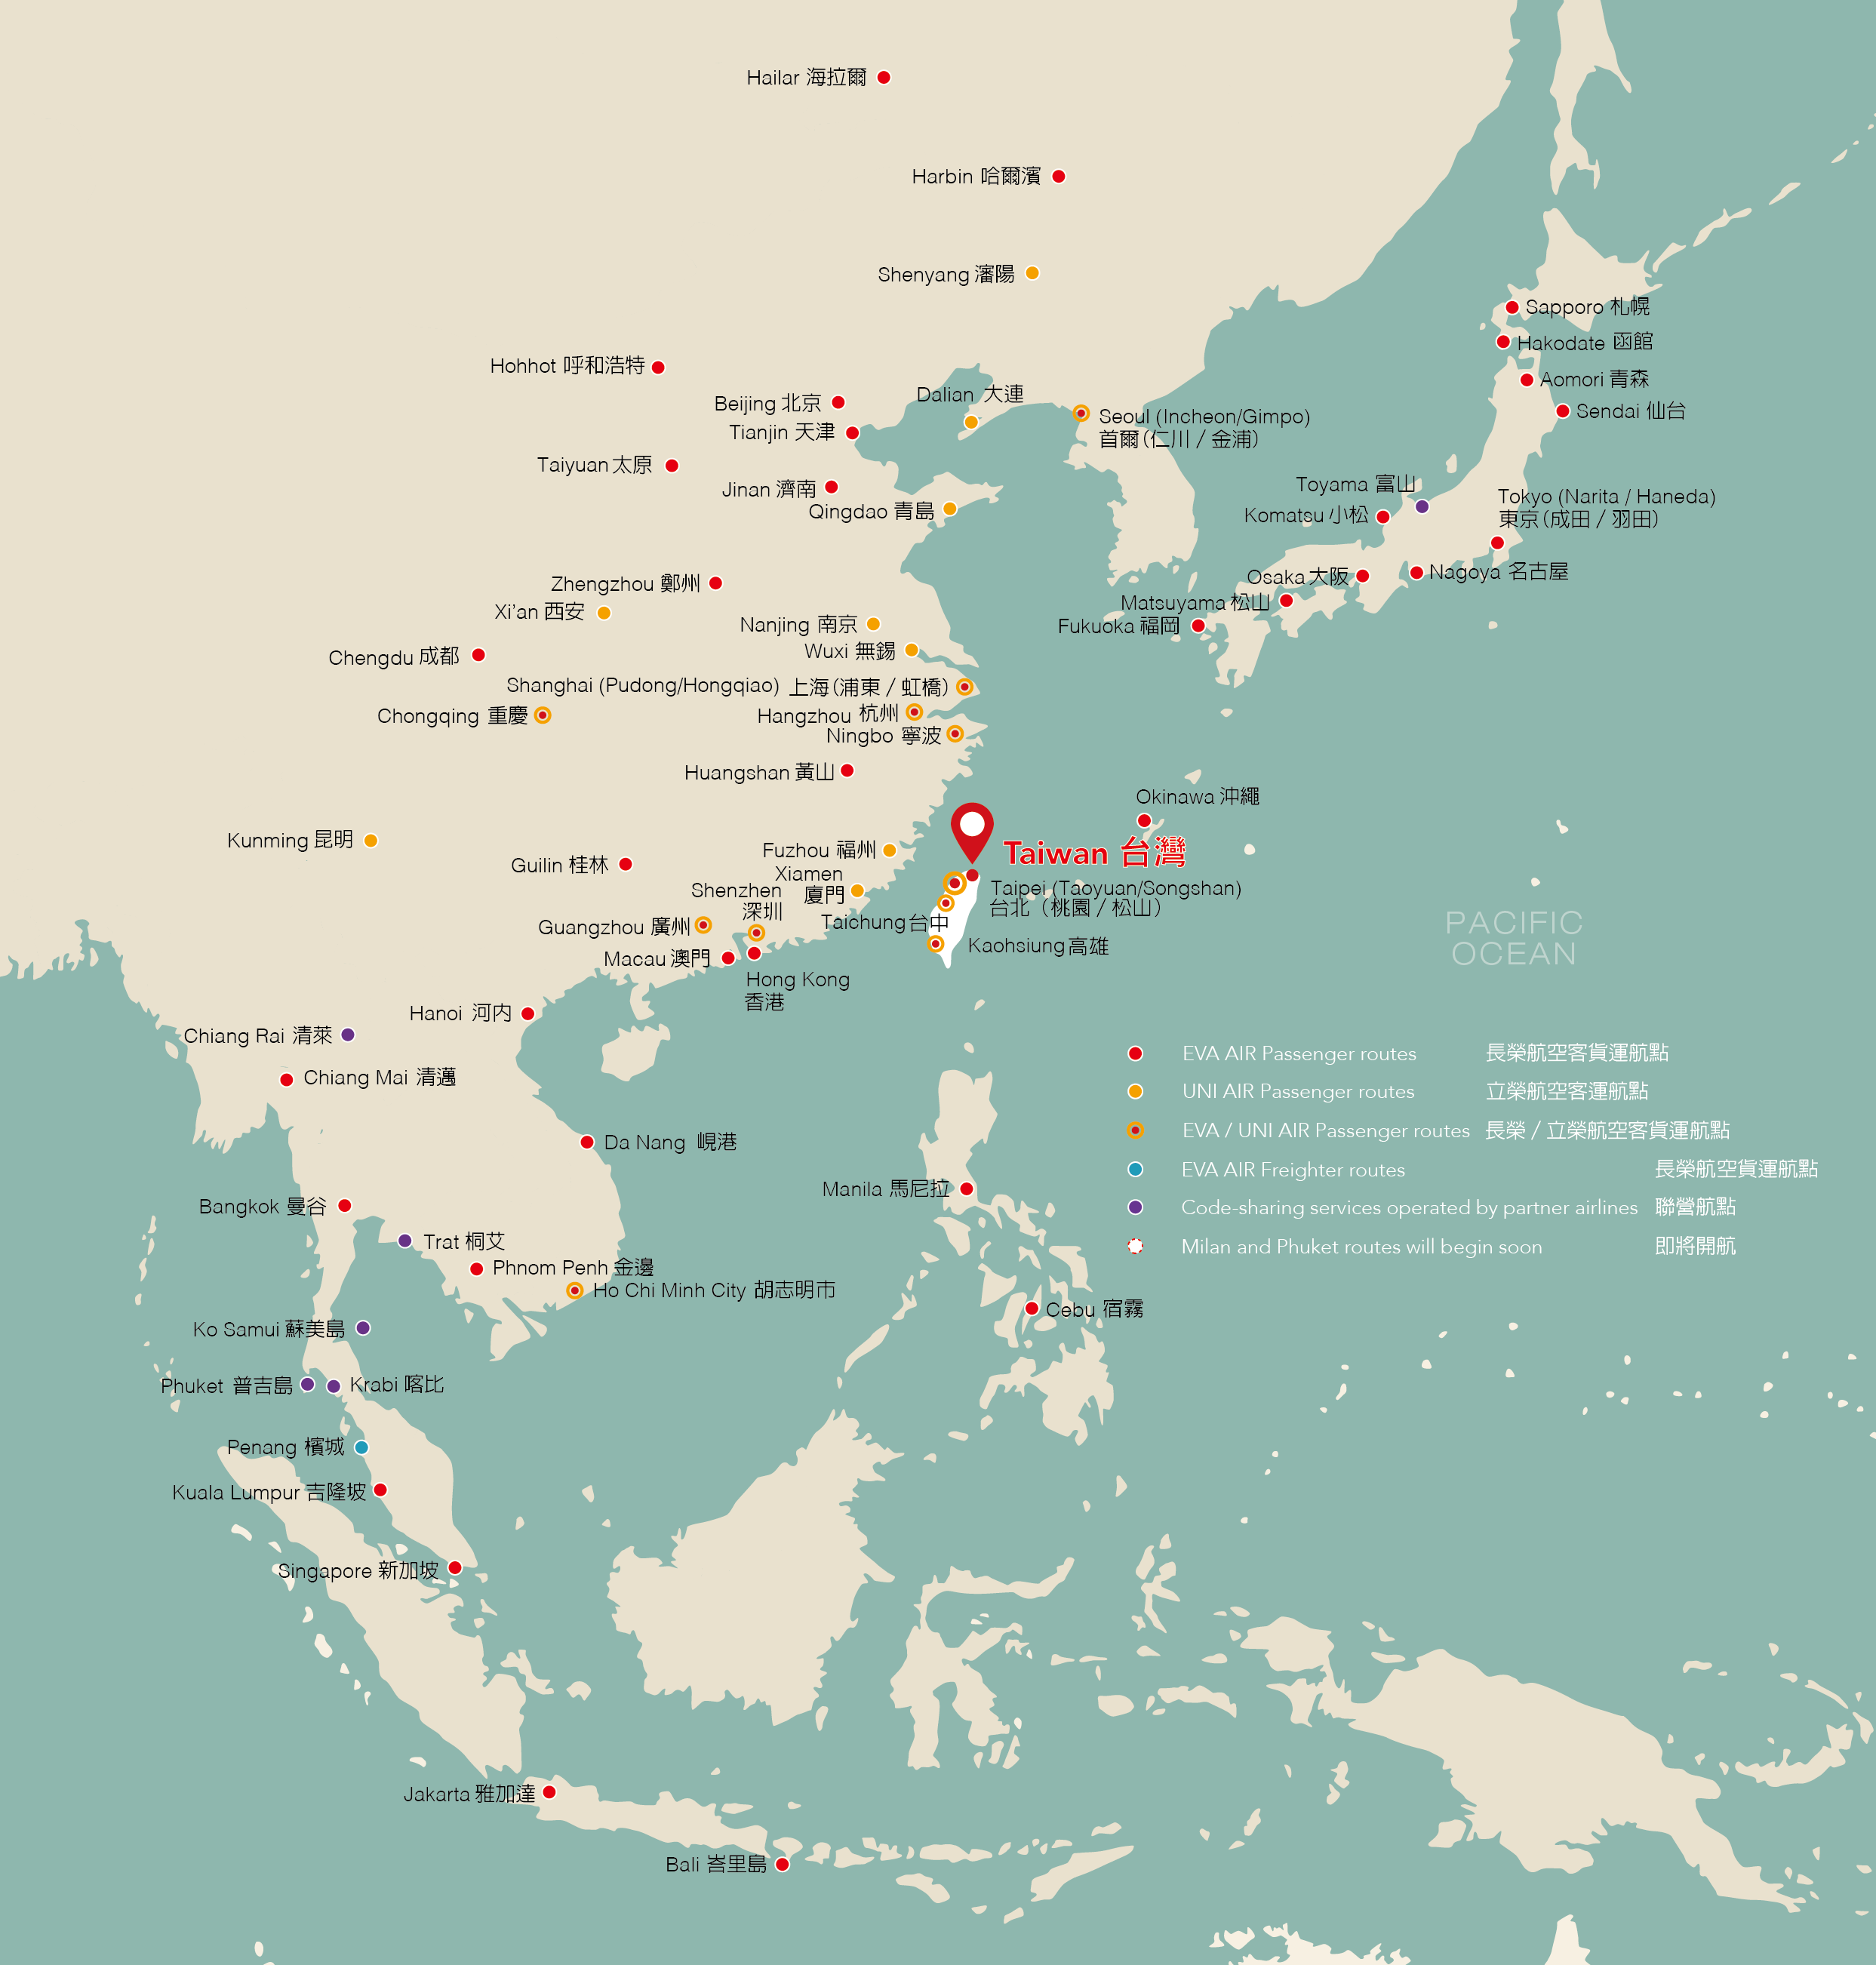 Asia Area Route Map